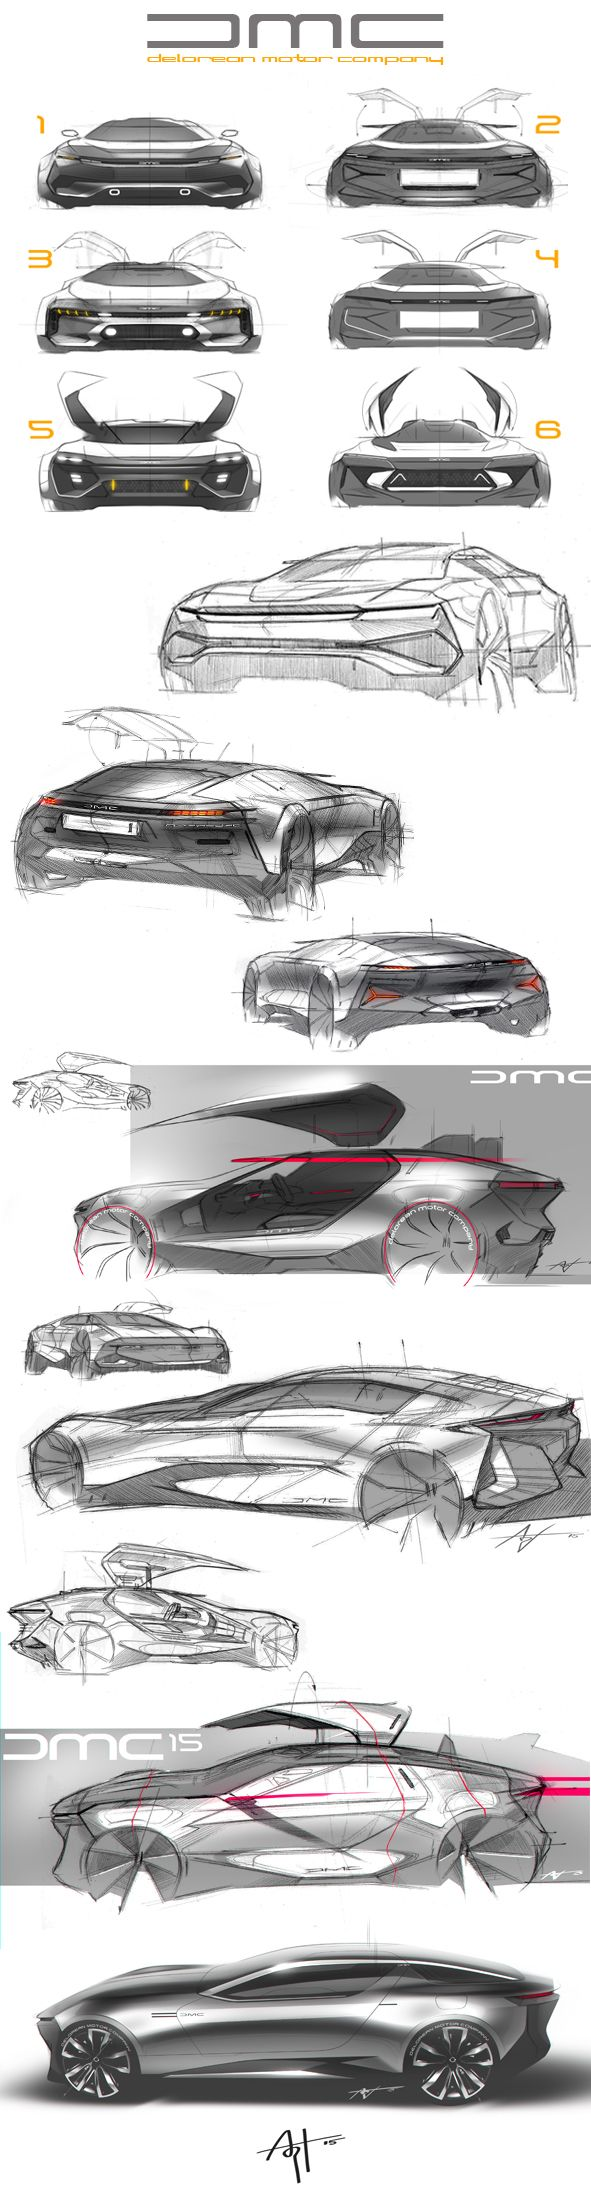 Some randon DeLorean sketches.. on Behance | Auto Design | Pinterest ...